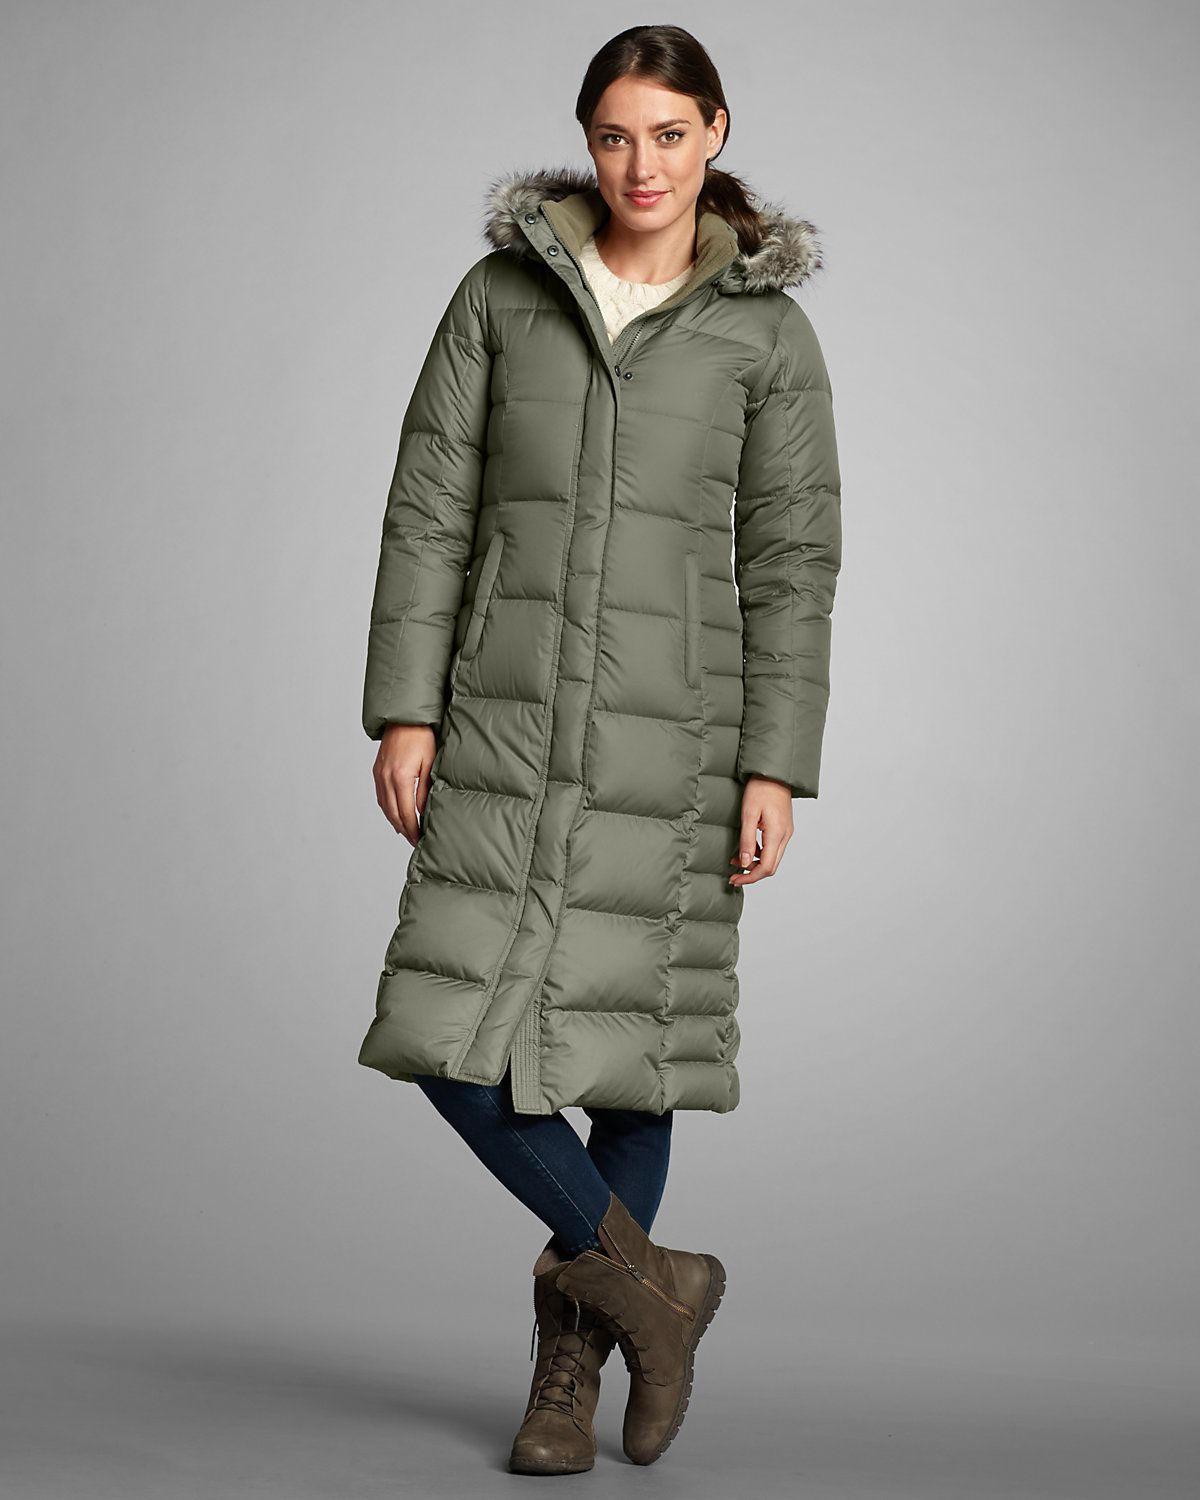 Women's Lodge Down Duffle Coat | Eddie Bauer | coats | Pinterest ...